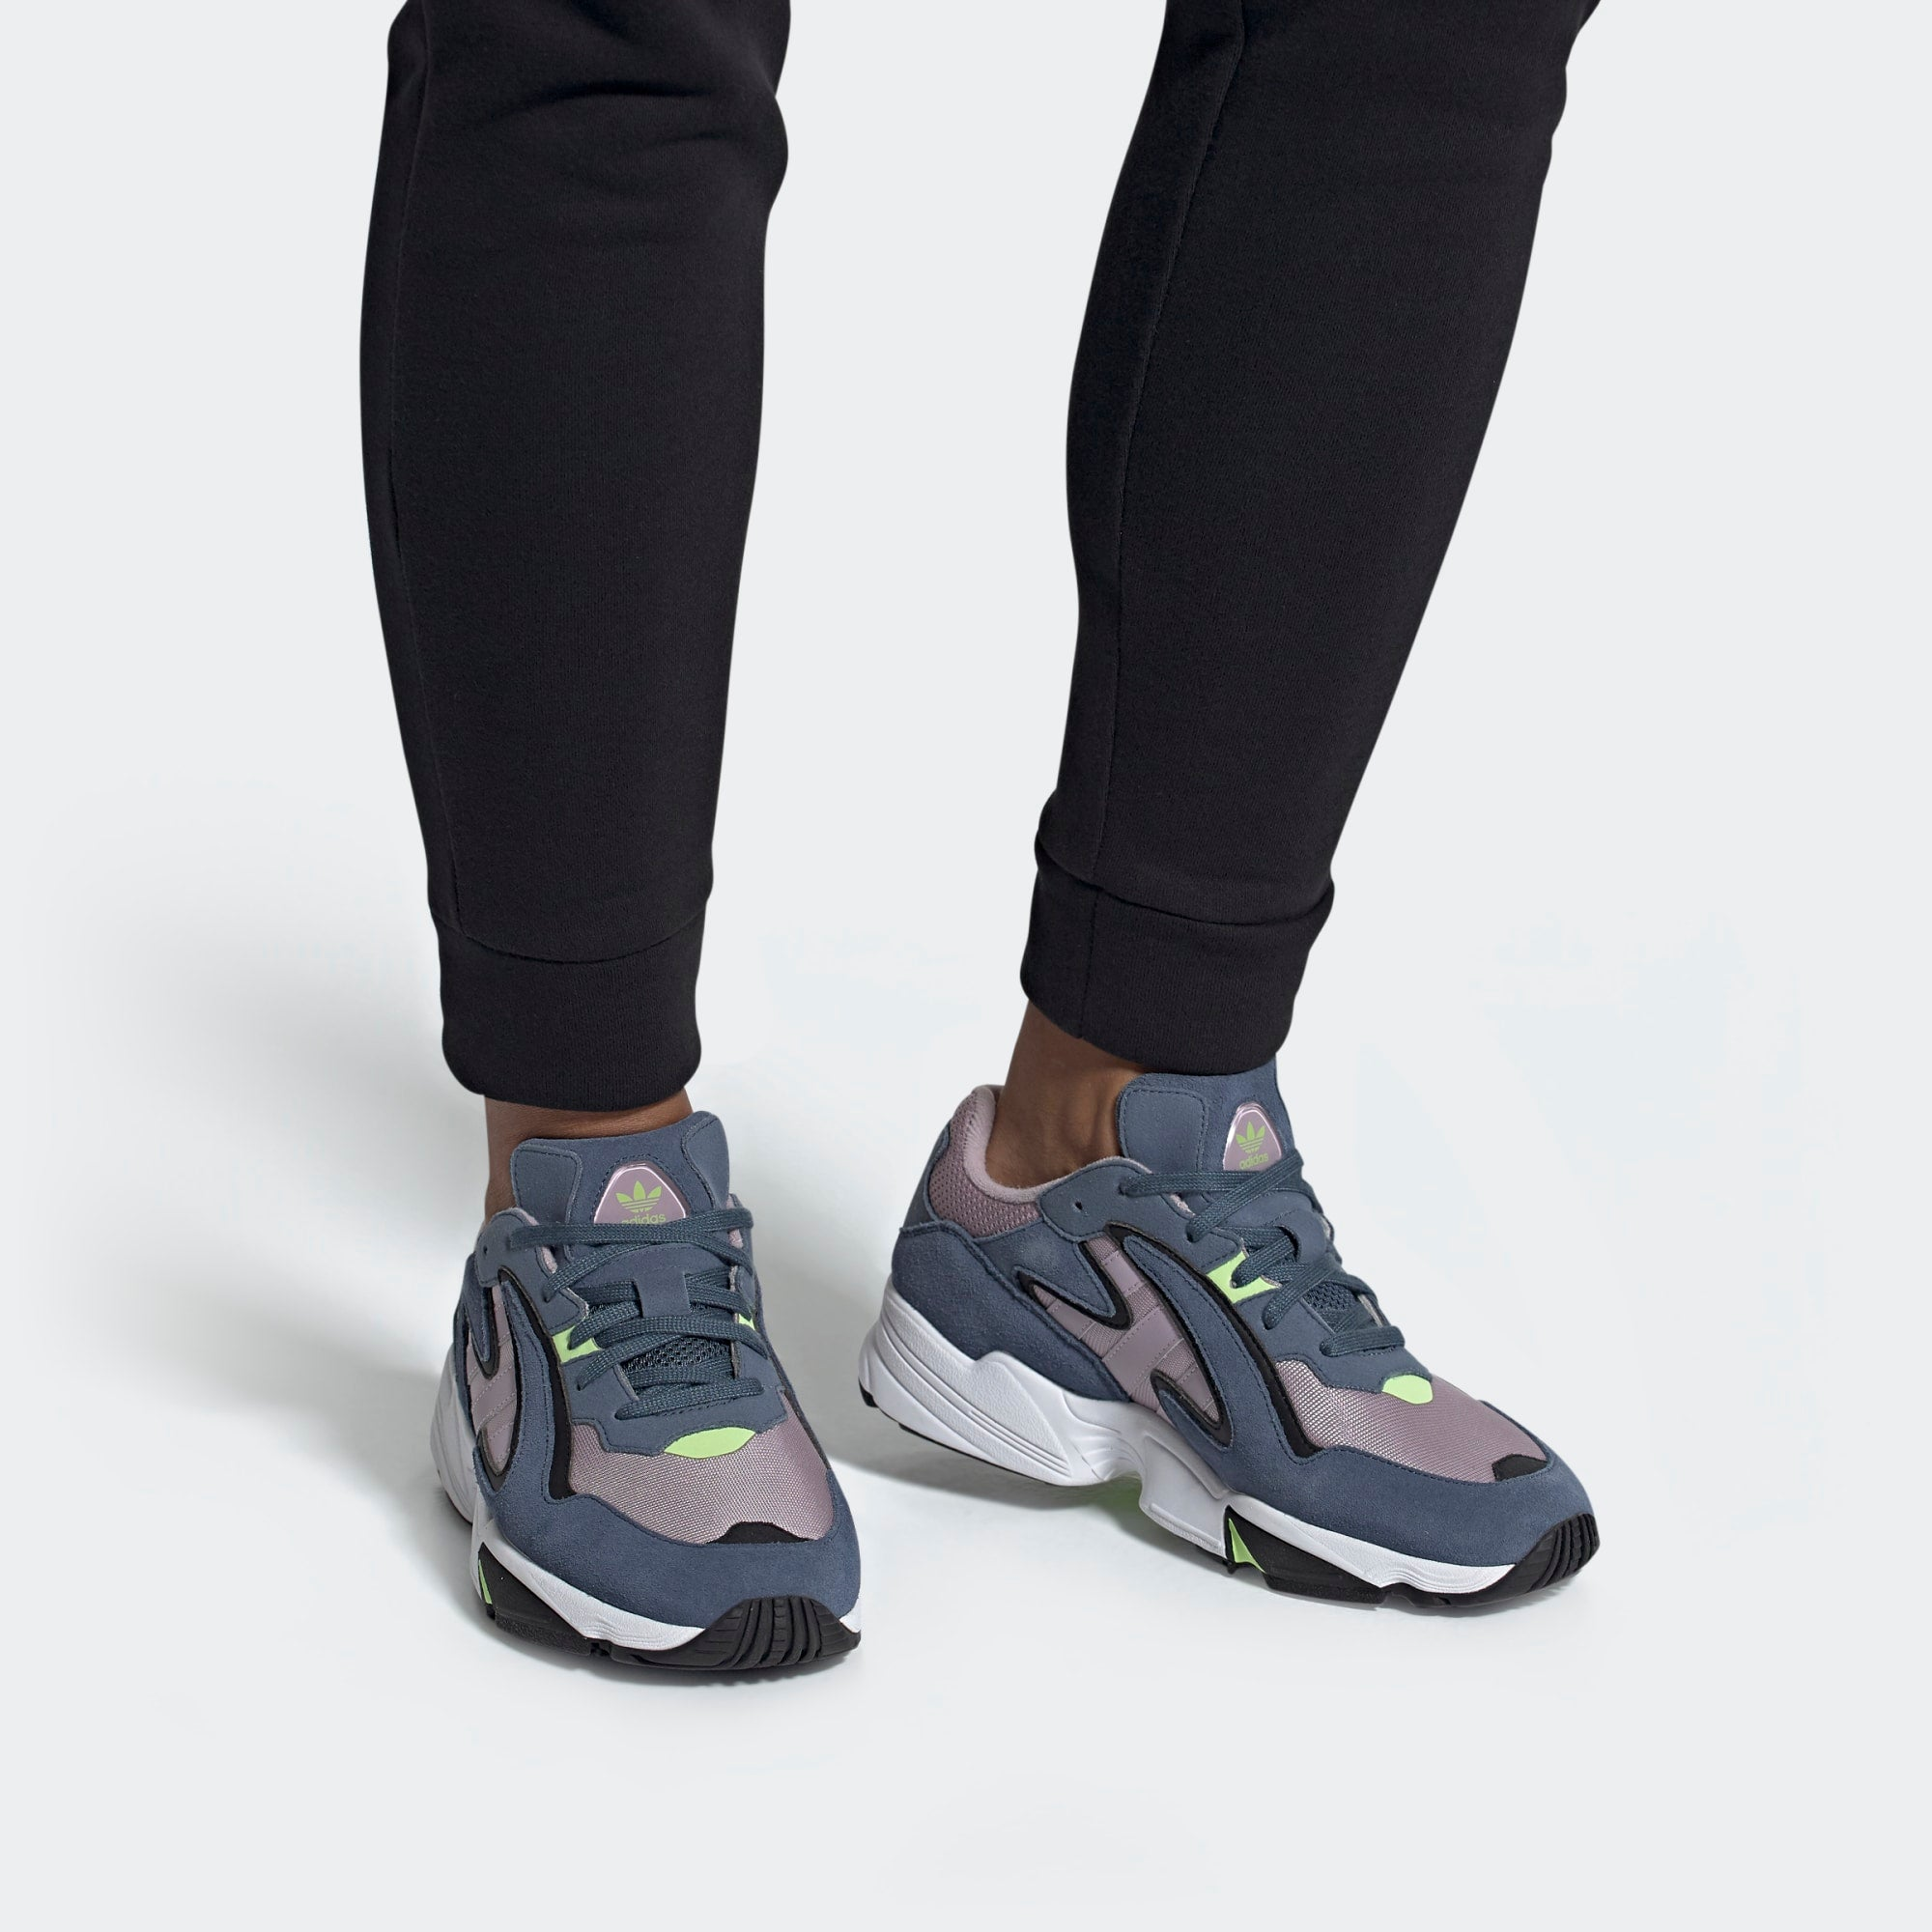 adidas Yung-96 Chasm Shoes Tech Ink